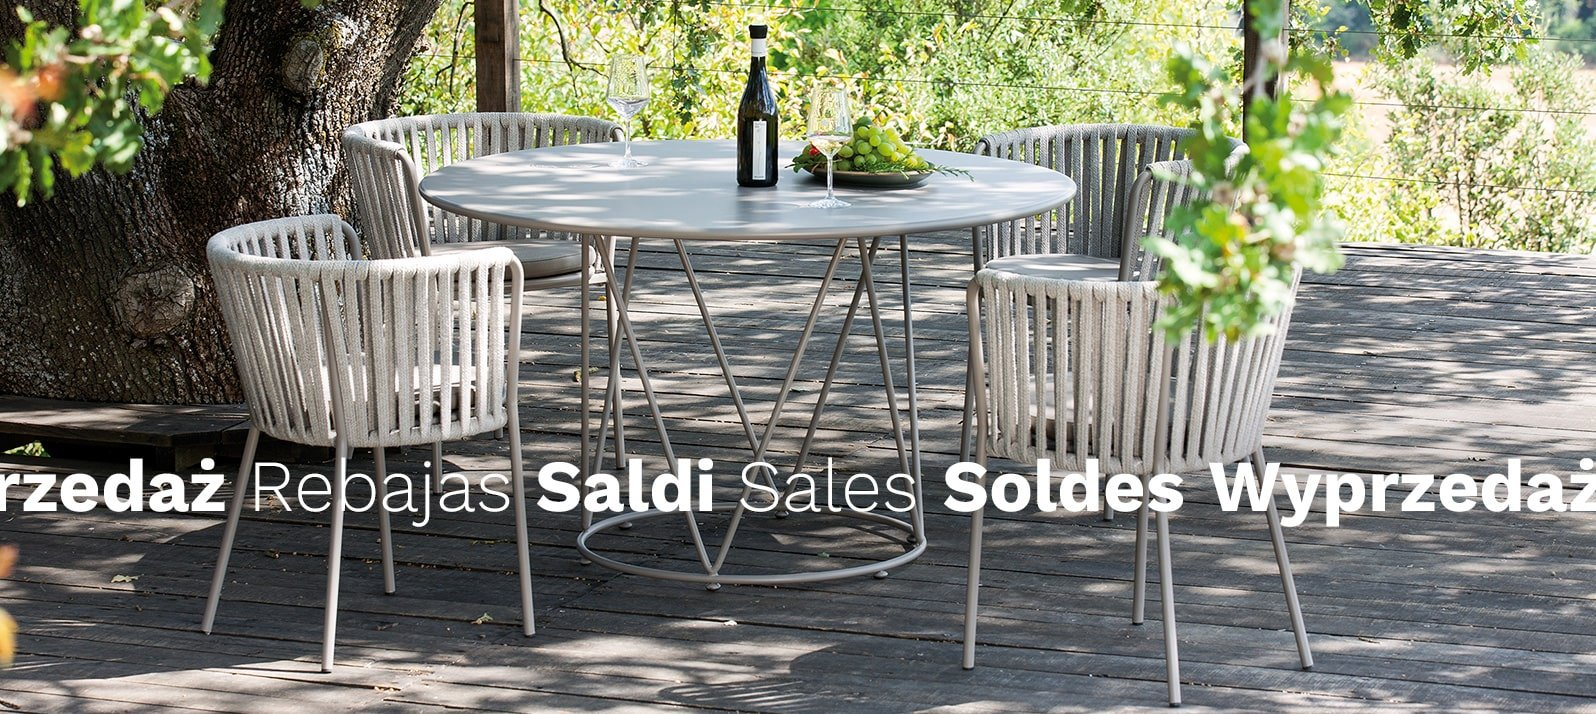 Take a seat at the SALES table